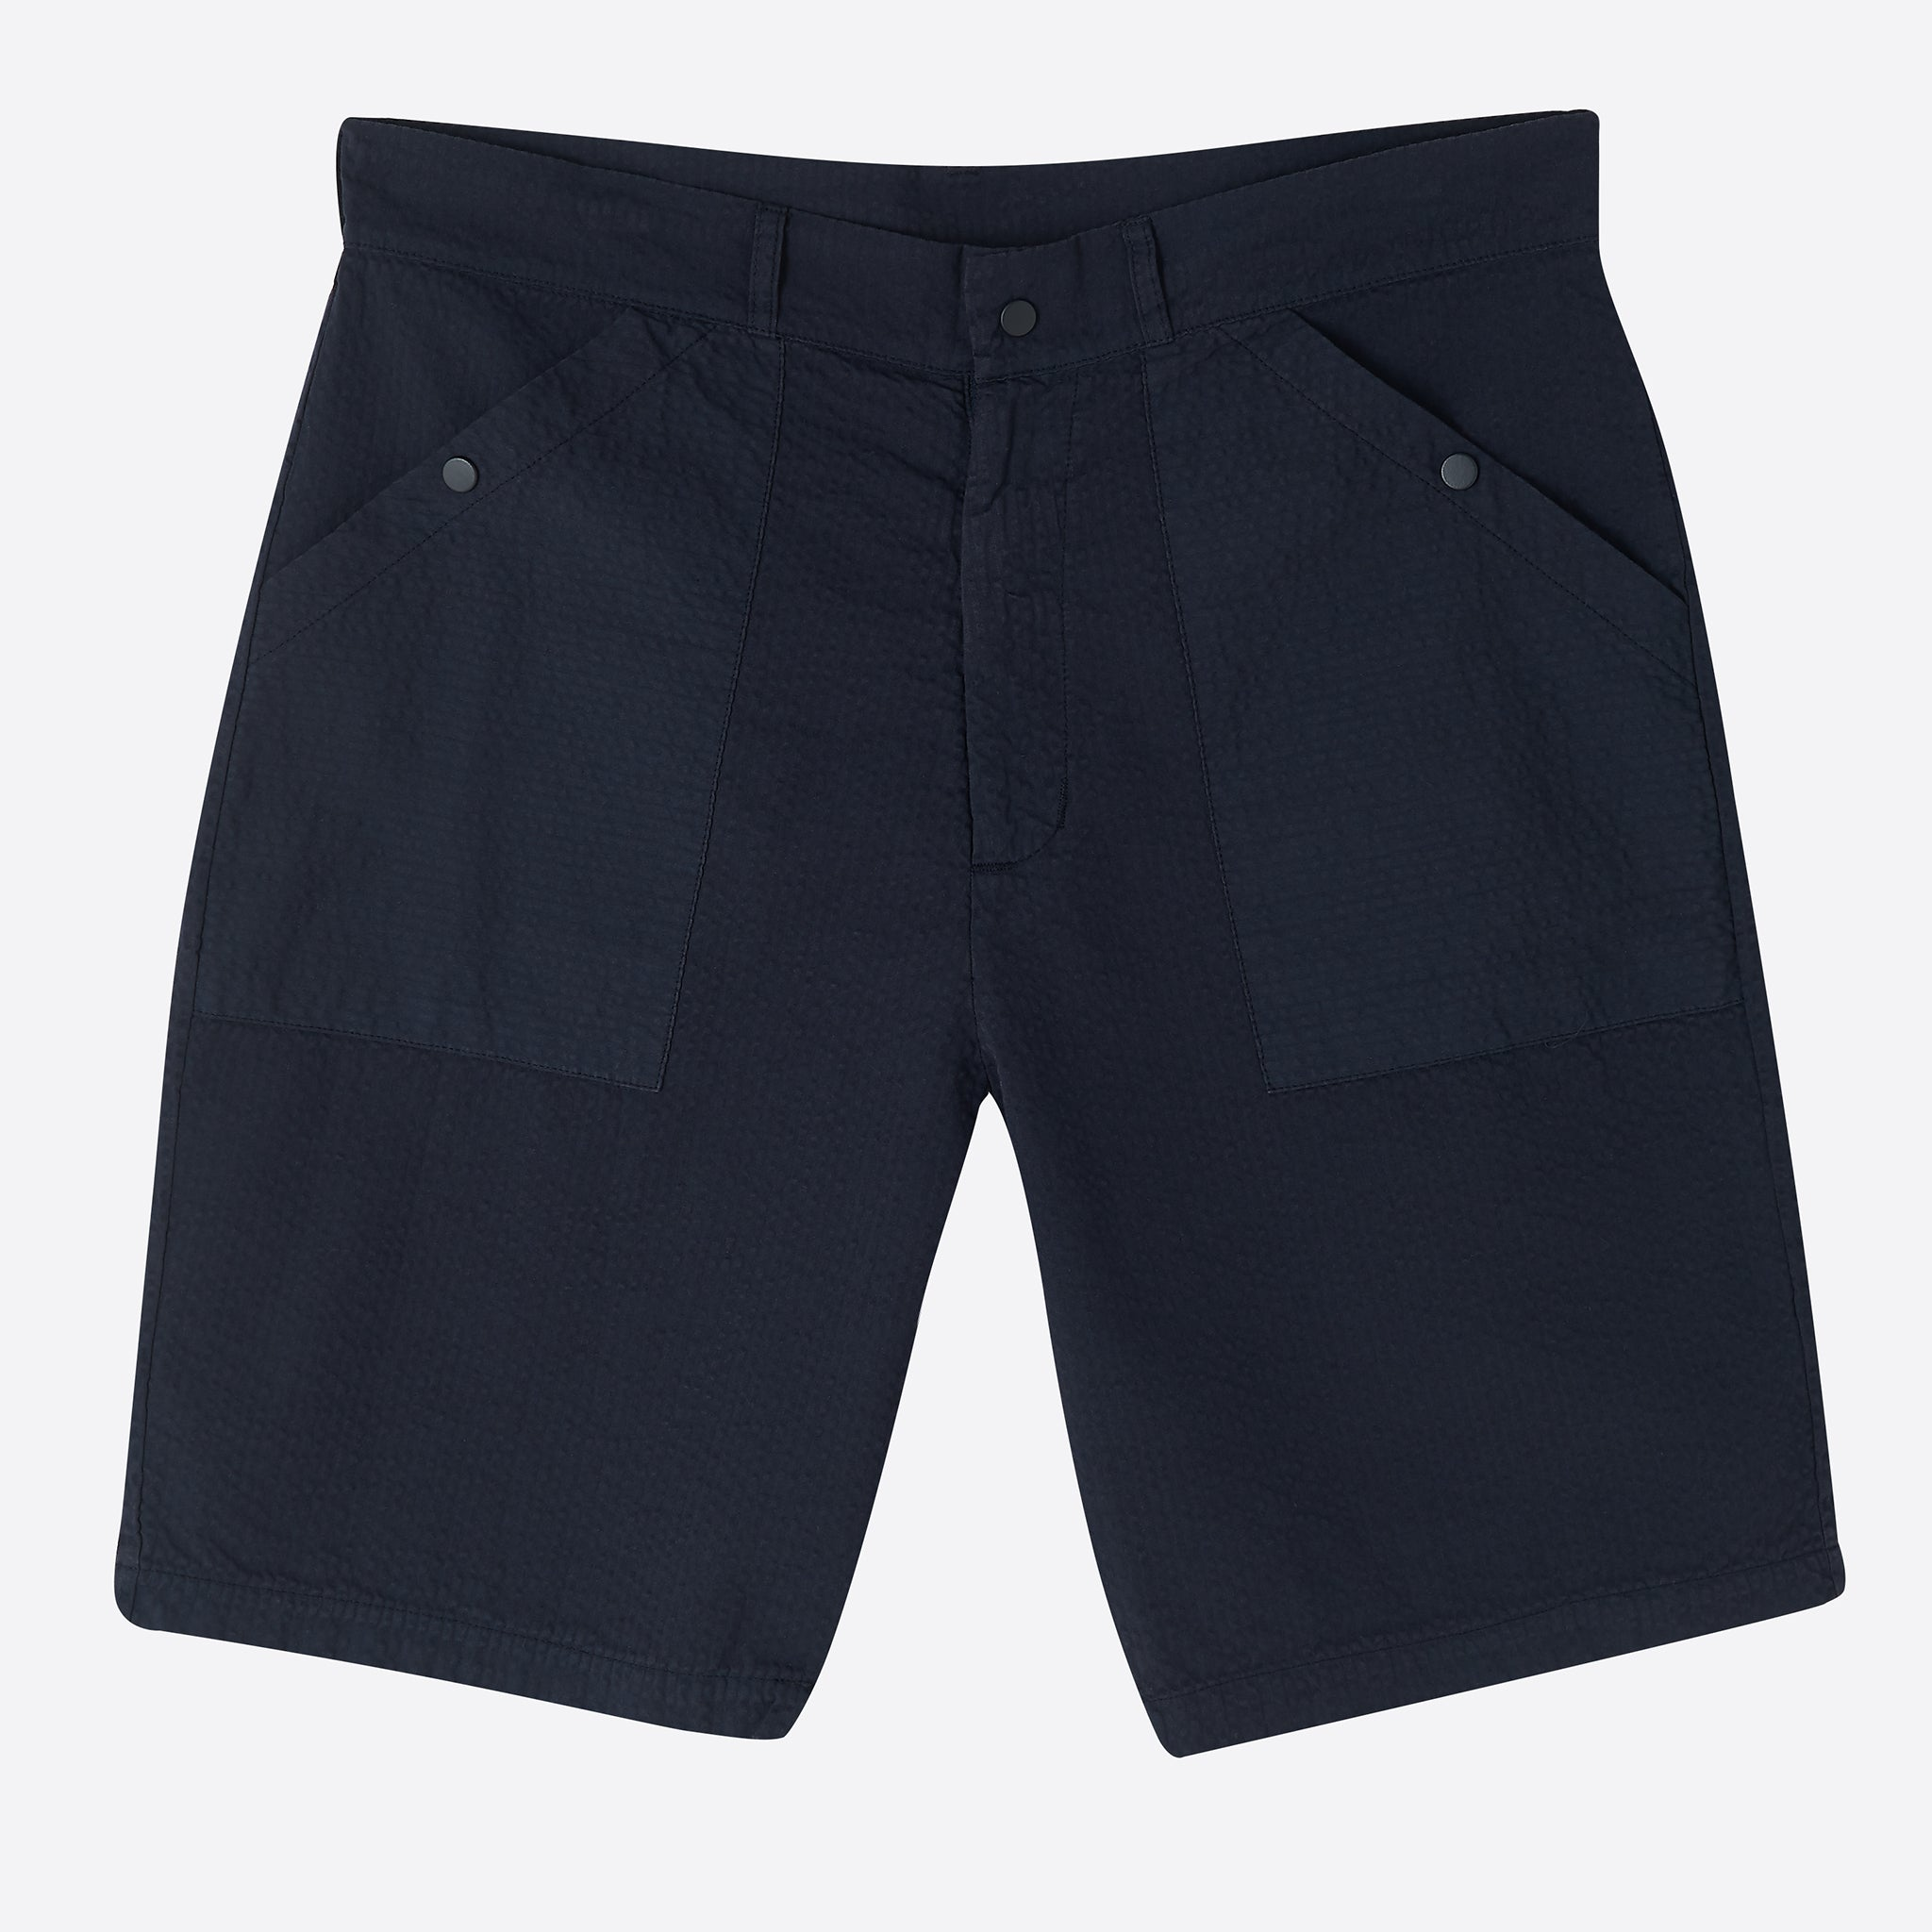 Les Basics Le Patch Shorts in Navy